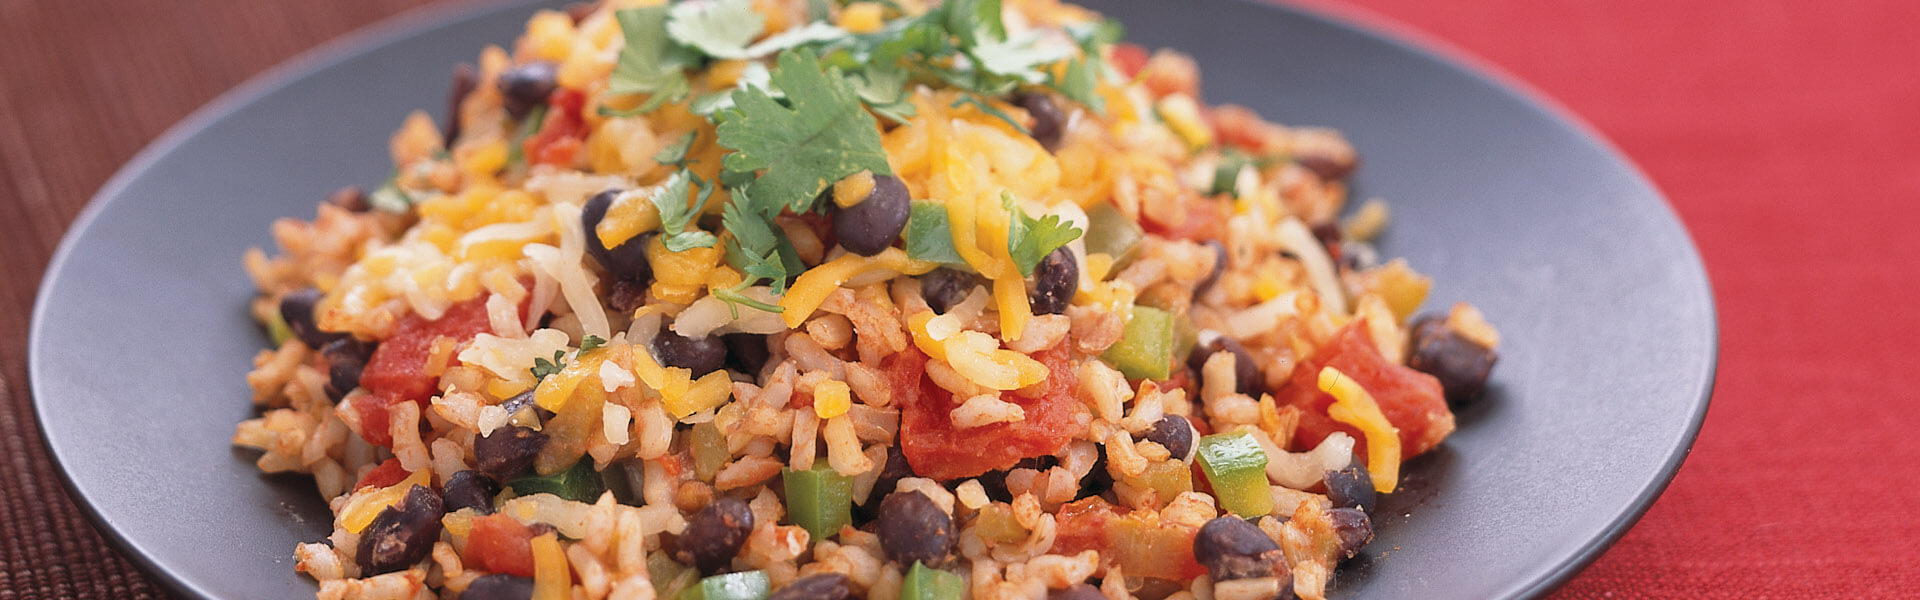 Spicy-Rice-Bean-and-Cheese-Skillet-with-brown-rice